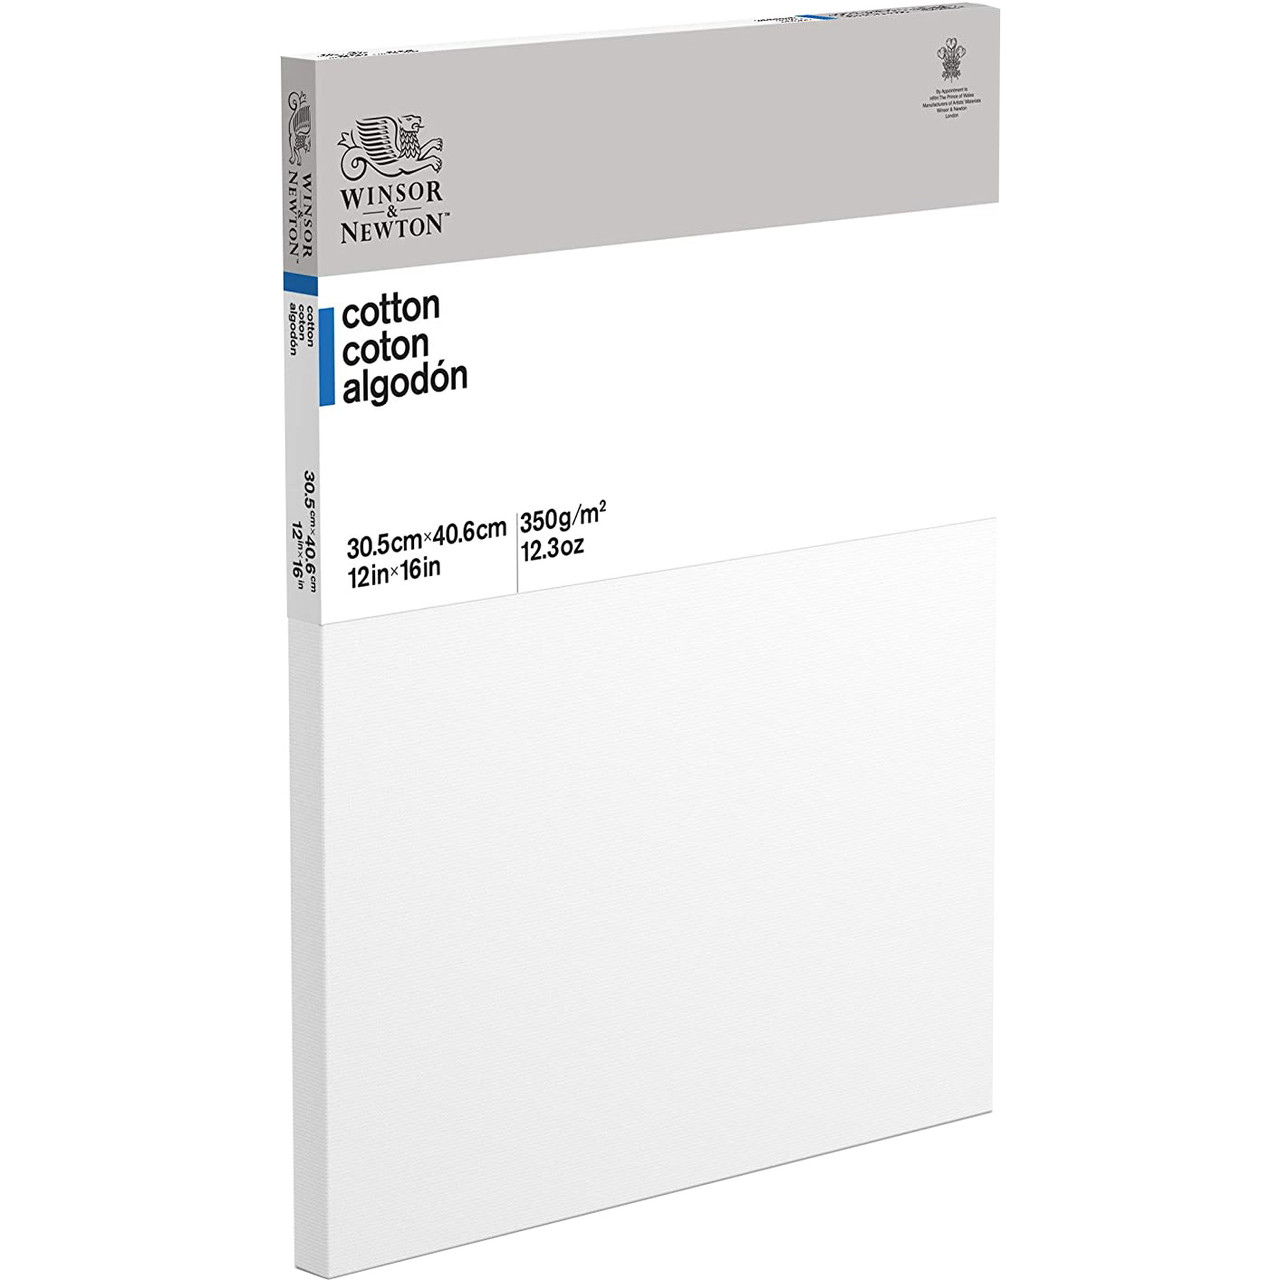 Winsor & Newton's Traditional Cotton Canvas